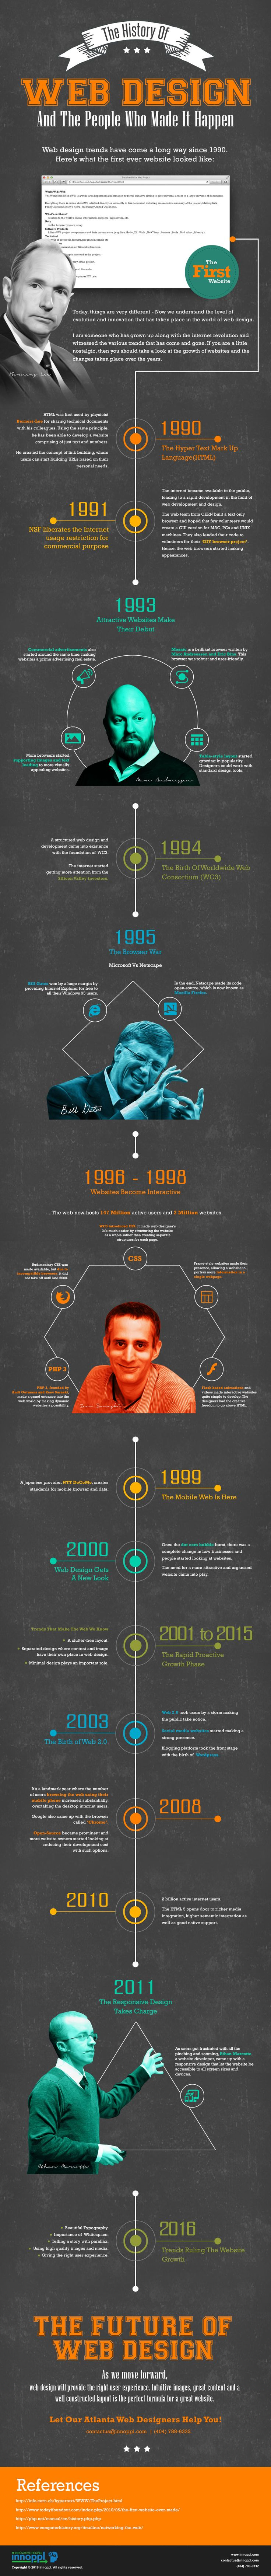 Have you ever wondered what was the very first website to debut online or who was the intelligent person to build something called a website and how did it look then? Web design trends have come a long way since 1990. This infographic by Innoppl takes a the history of web design and the people who made it happen.